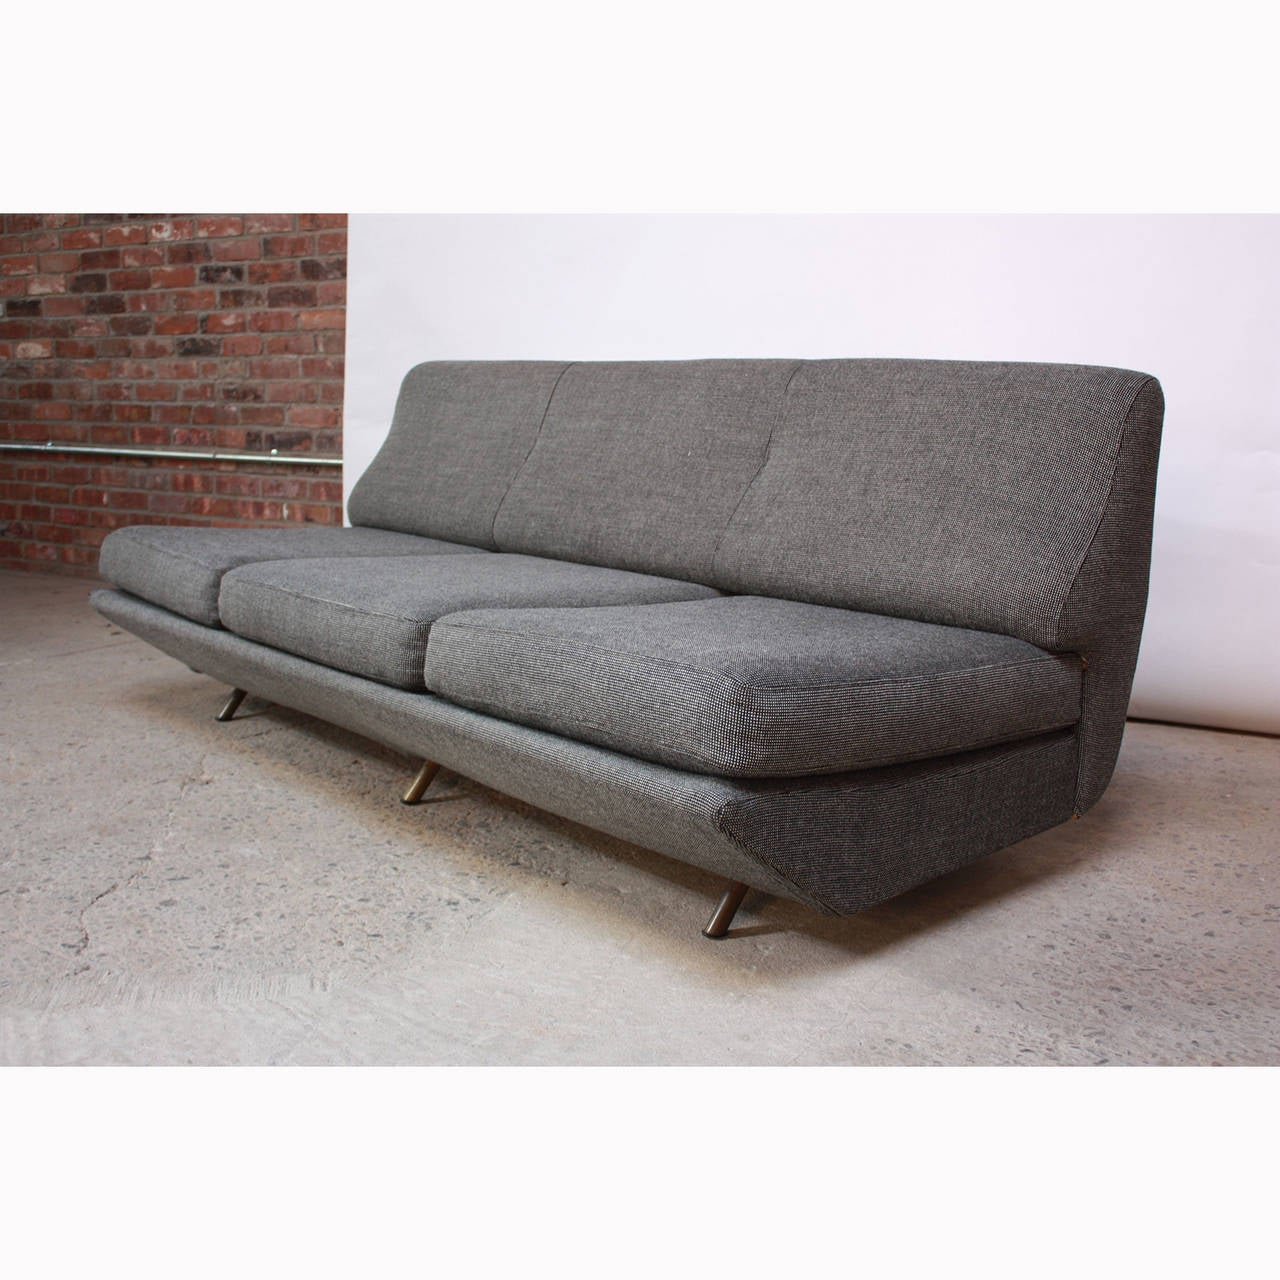 Marco Zanuso 'Sleep-O-Matic' Sofa for Arflex 5